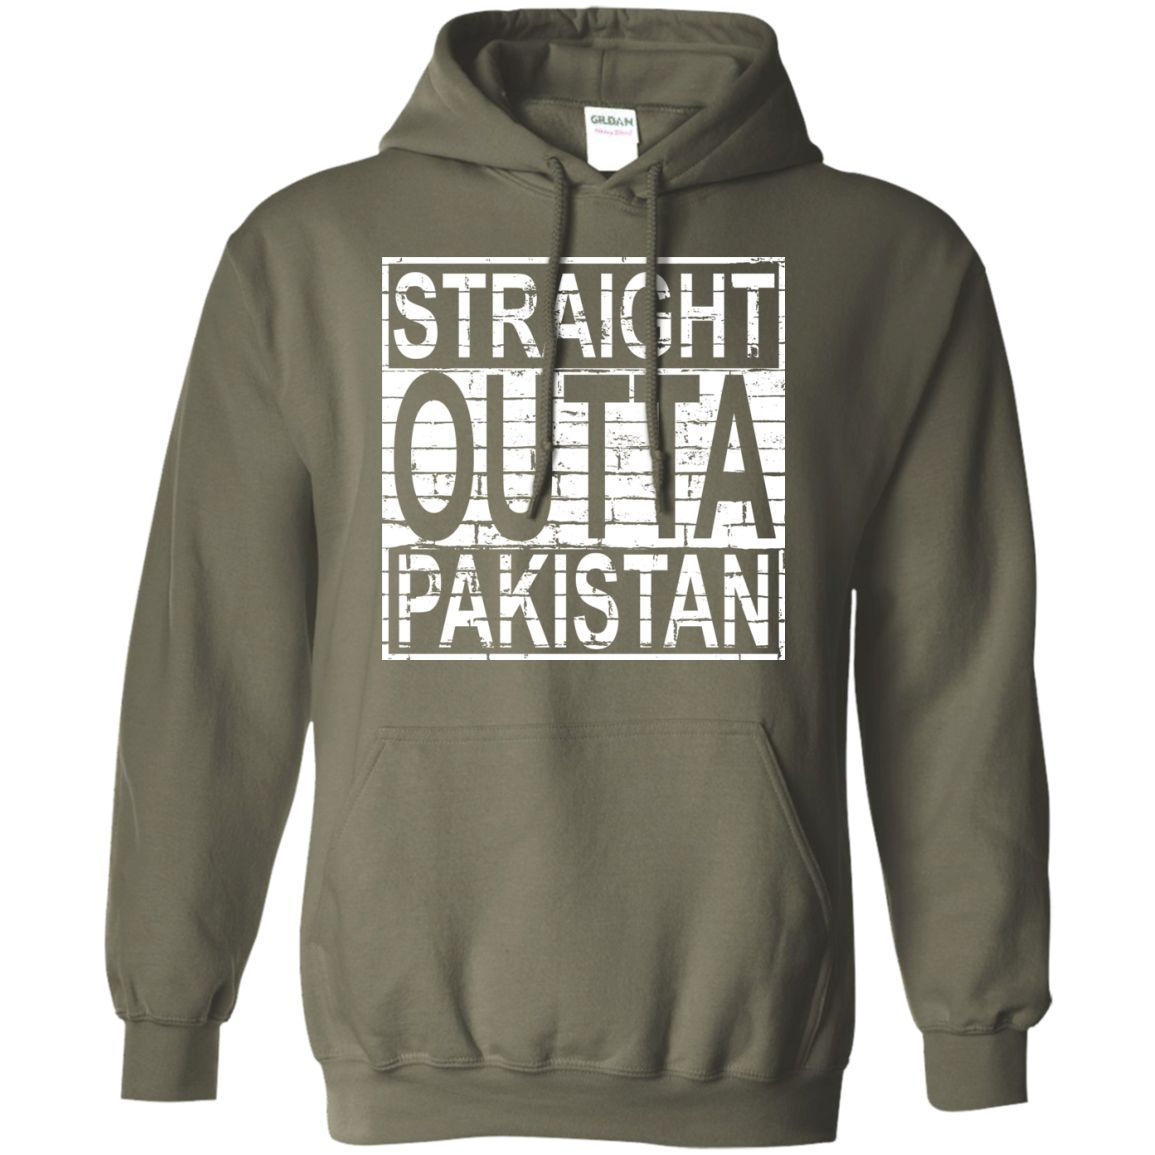 STRAIGHT OUTTA Pakistan Pullover Hoodie 8 oz | Products | Pinterest